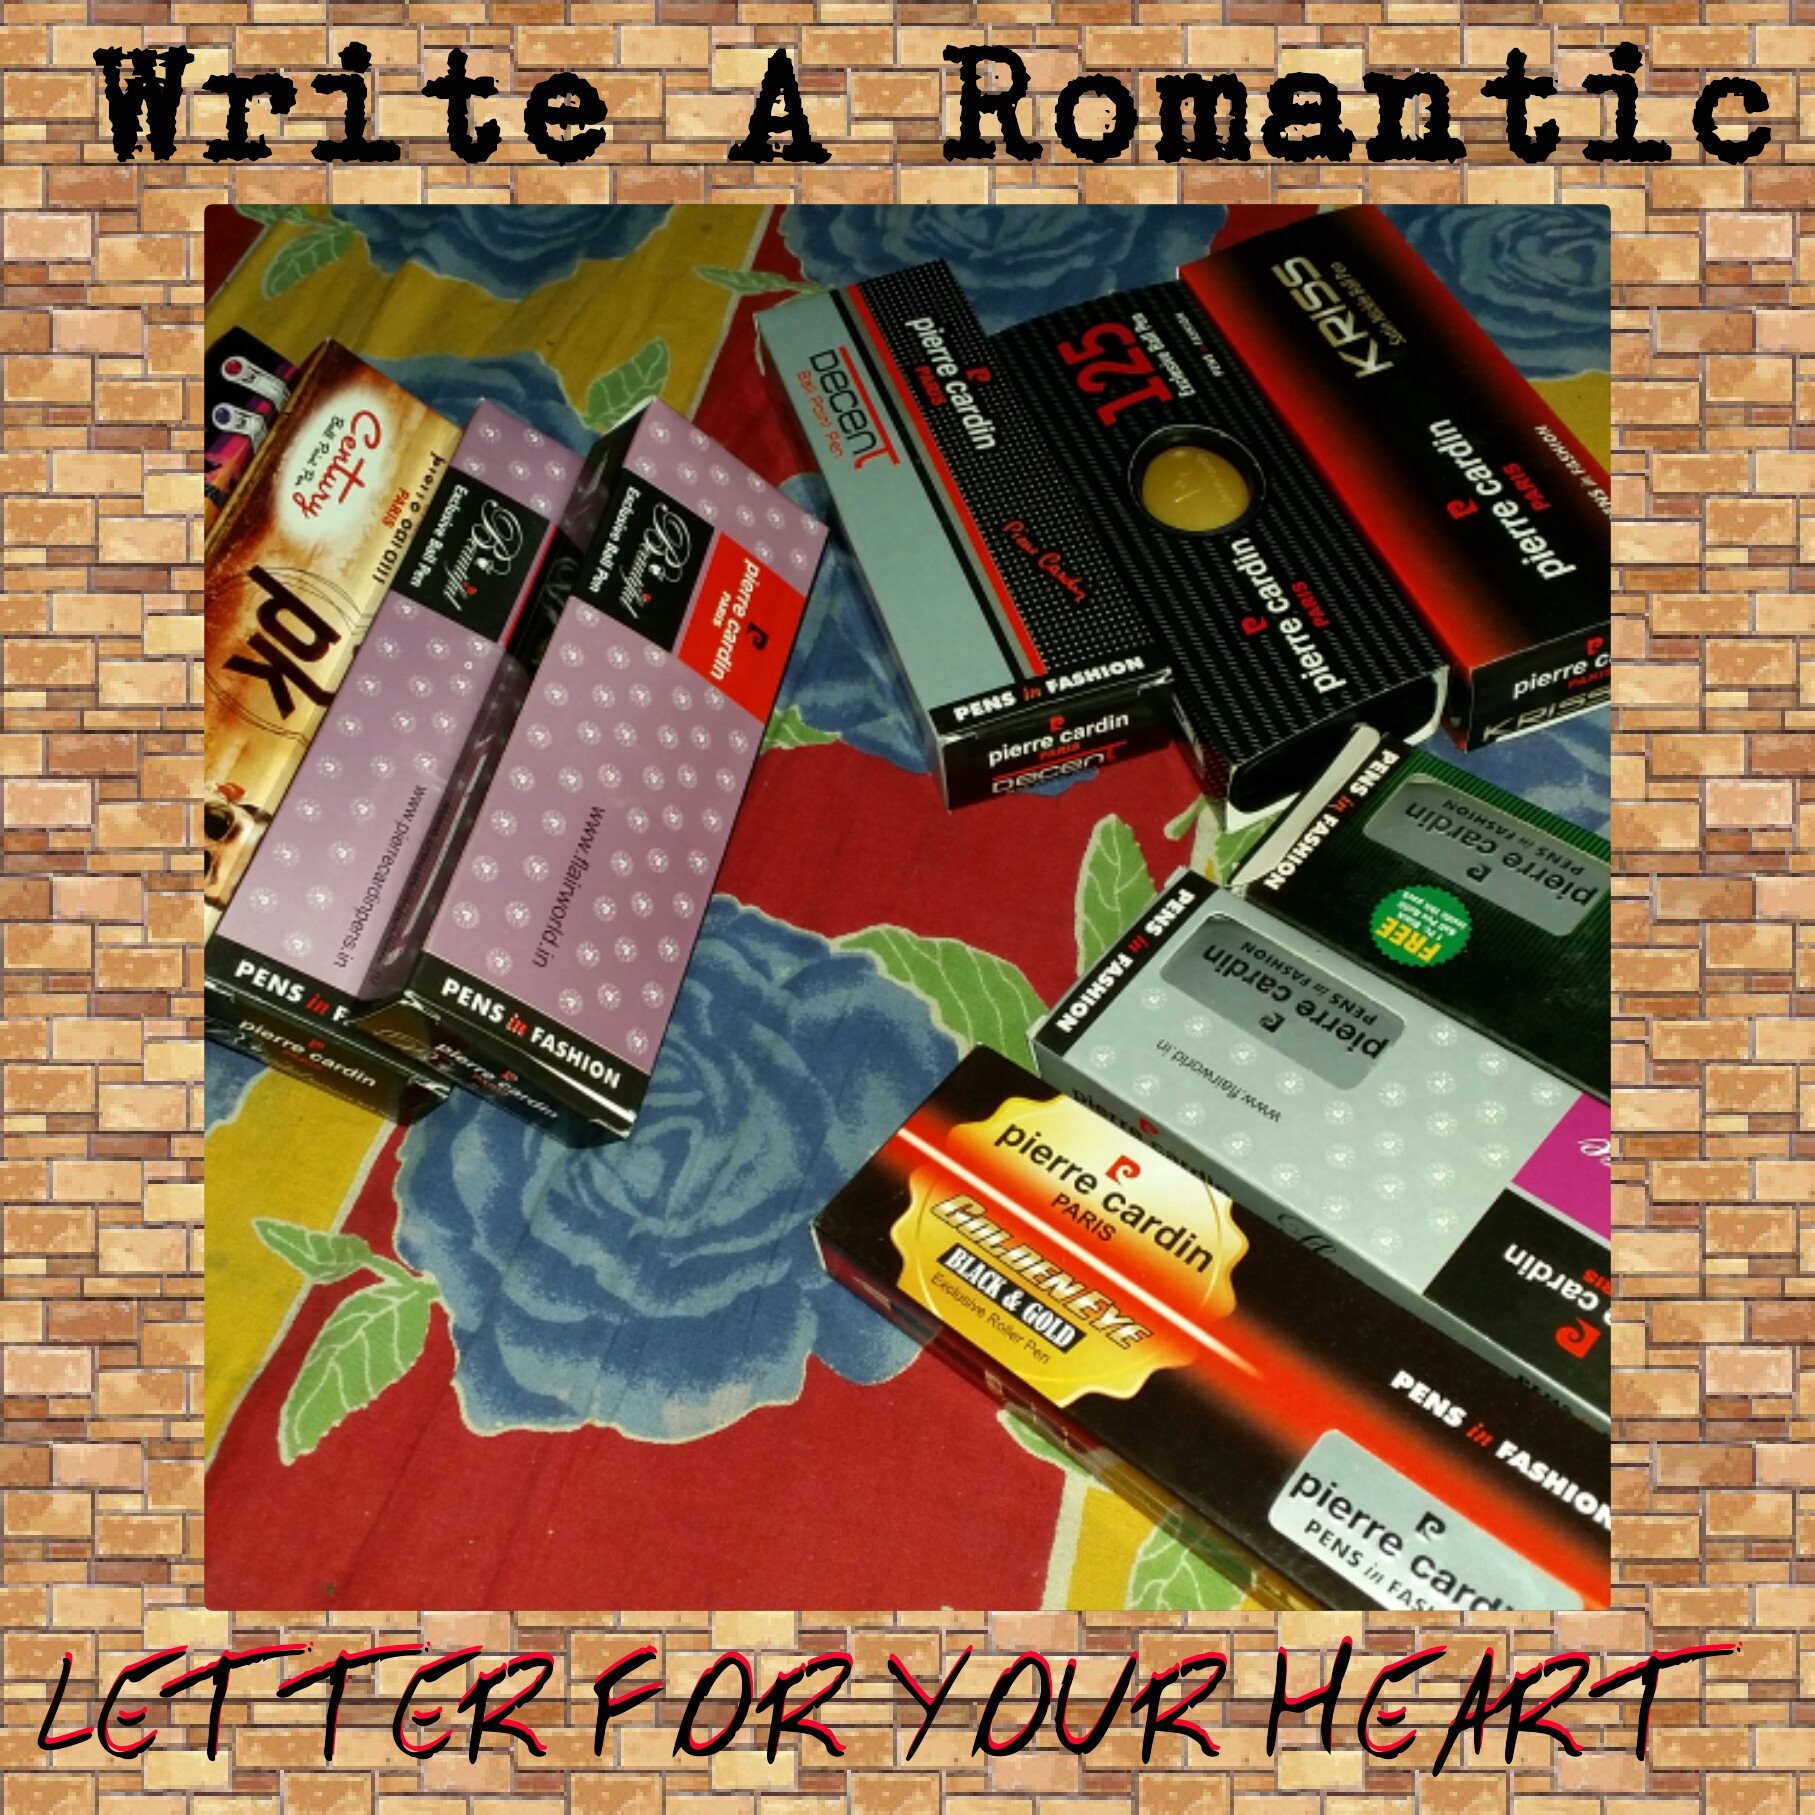 Write 2 touching romantic letter for your soul mate